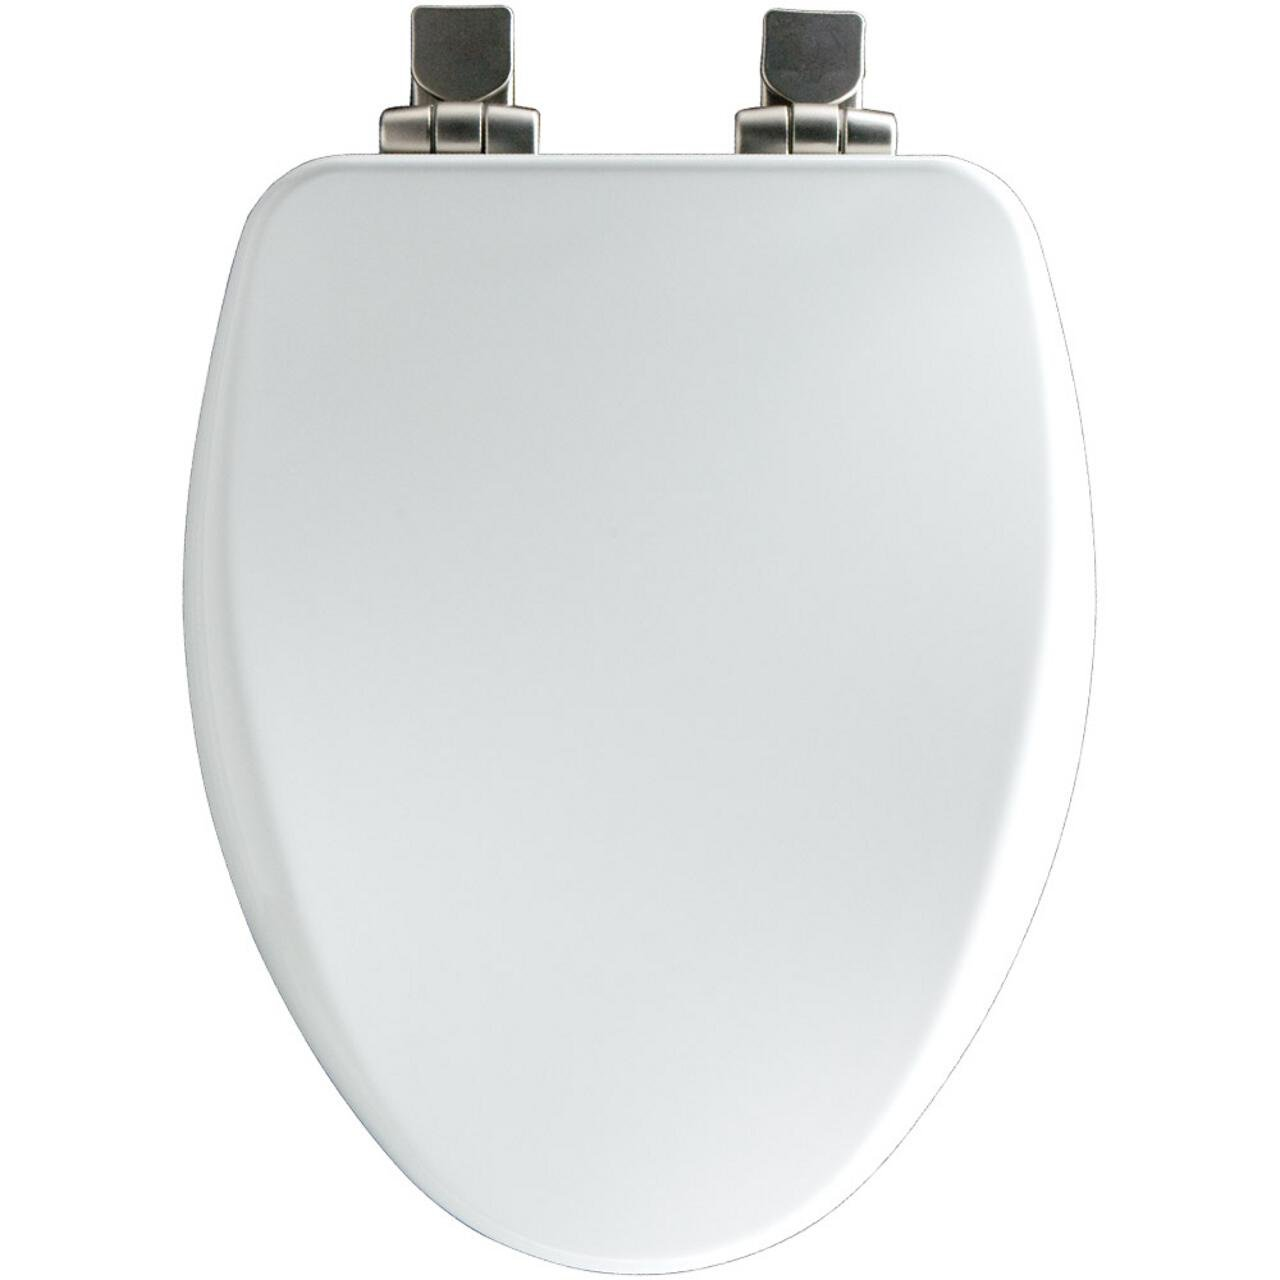 wooden soft close toilet seat white. Church 18170NISL 000 Elongated Soft Close Toilet Seat with Nickel Hinges  White Amazon com